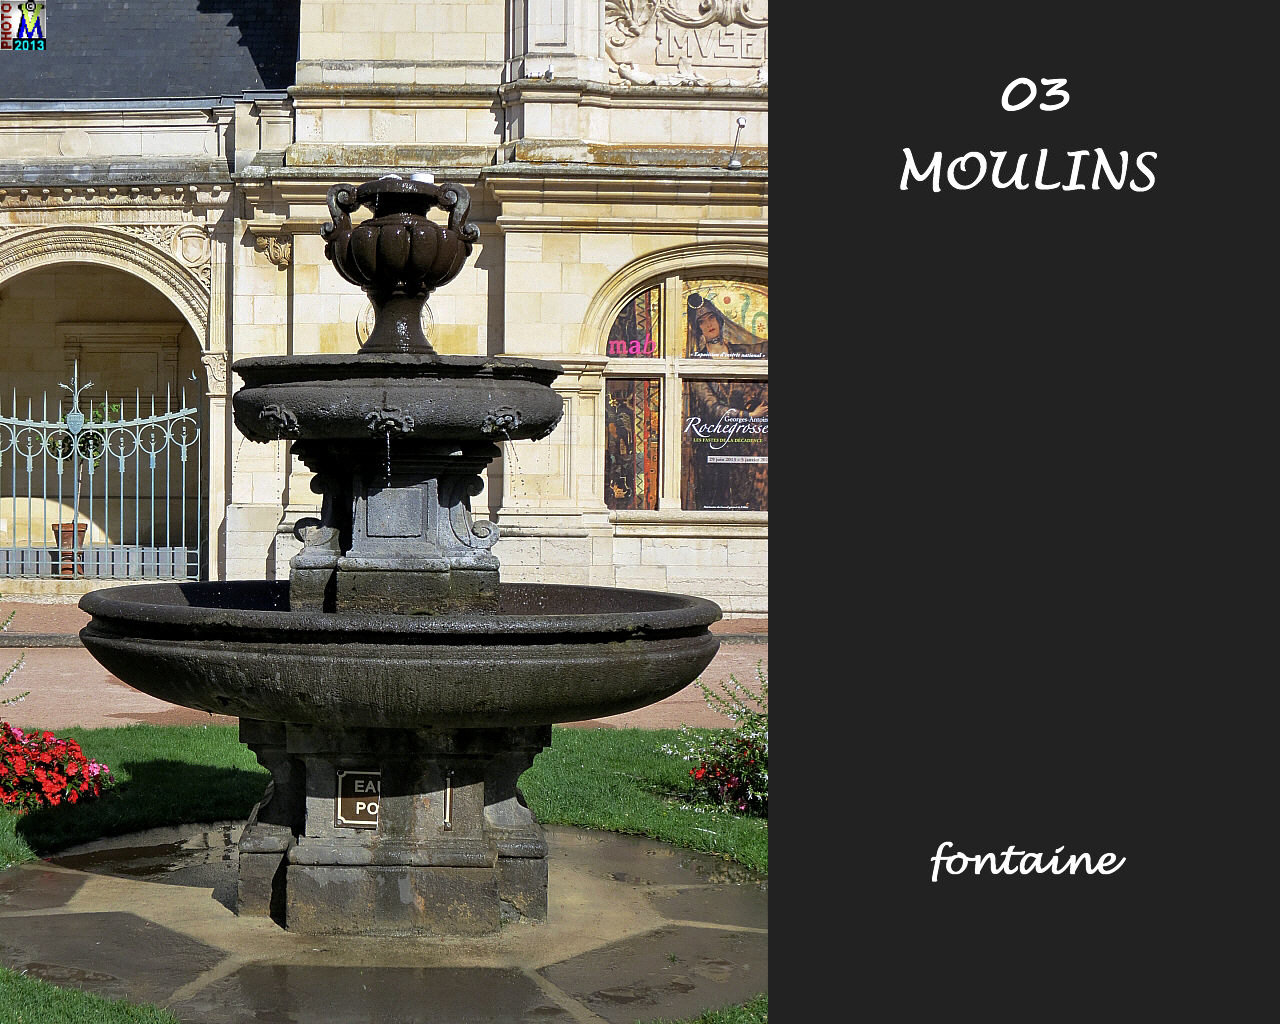 03MOULINS_fontaine_110.jpg